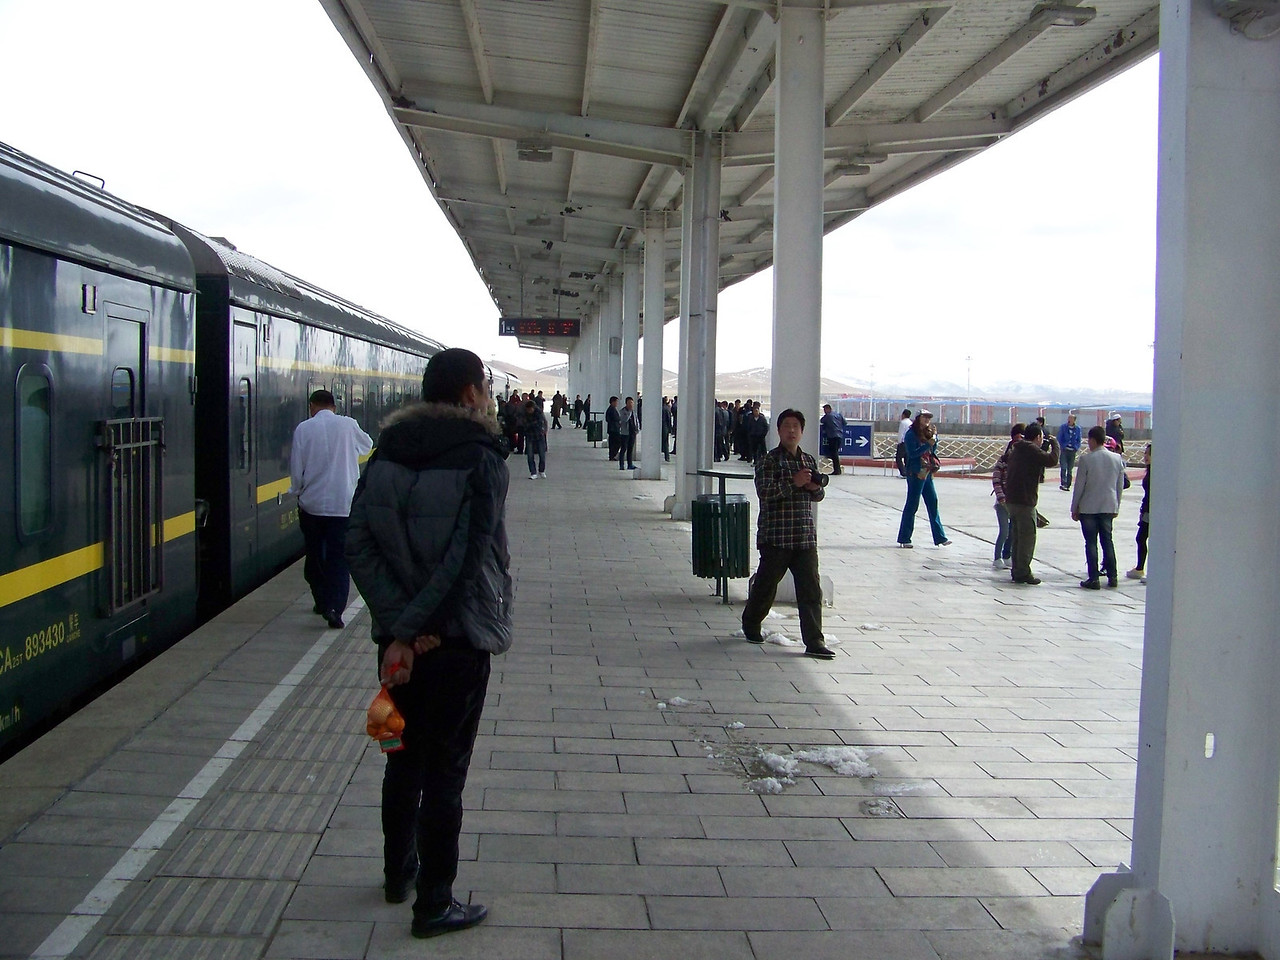 0105 - Possibly Xing Bao Fang Train Station on our Final Morning on Train Trip Between Beijing and Lhasa.JPG